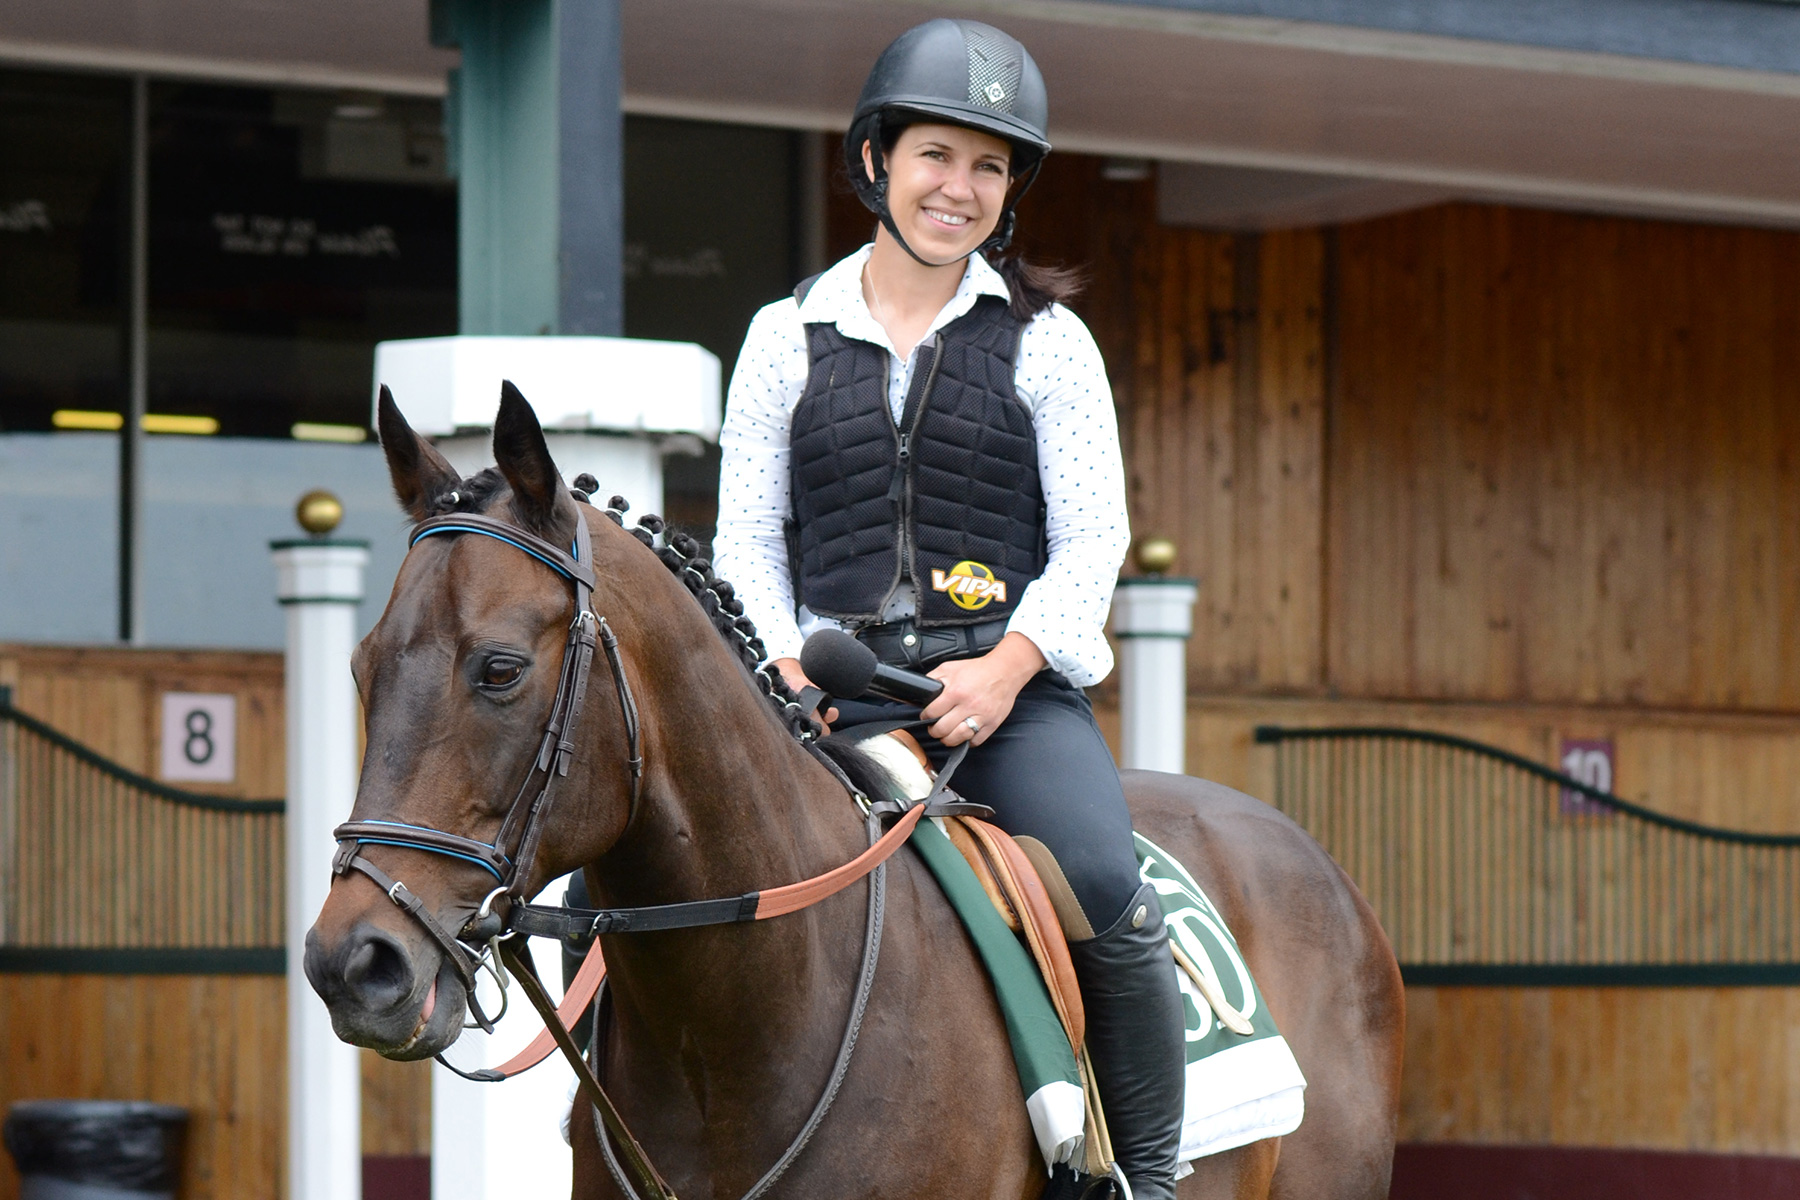 Jessica Paquette delivers her paddock analysis for the first race at Suffolk Downs on June 29, 2019 from atop New England champion Mr. Meso